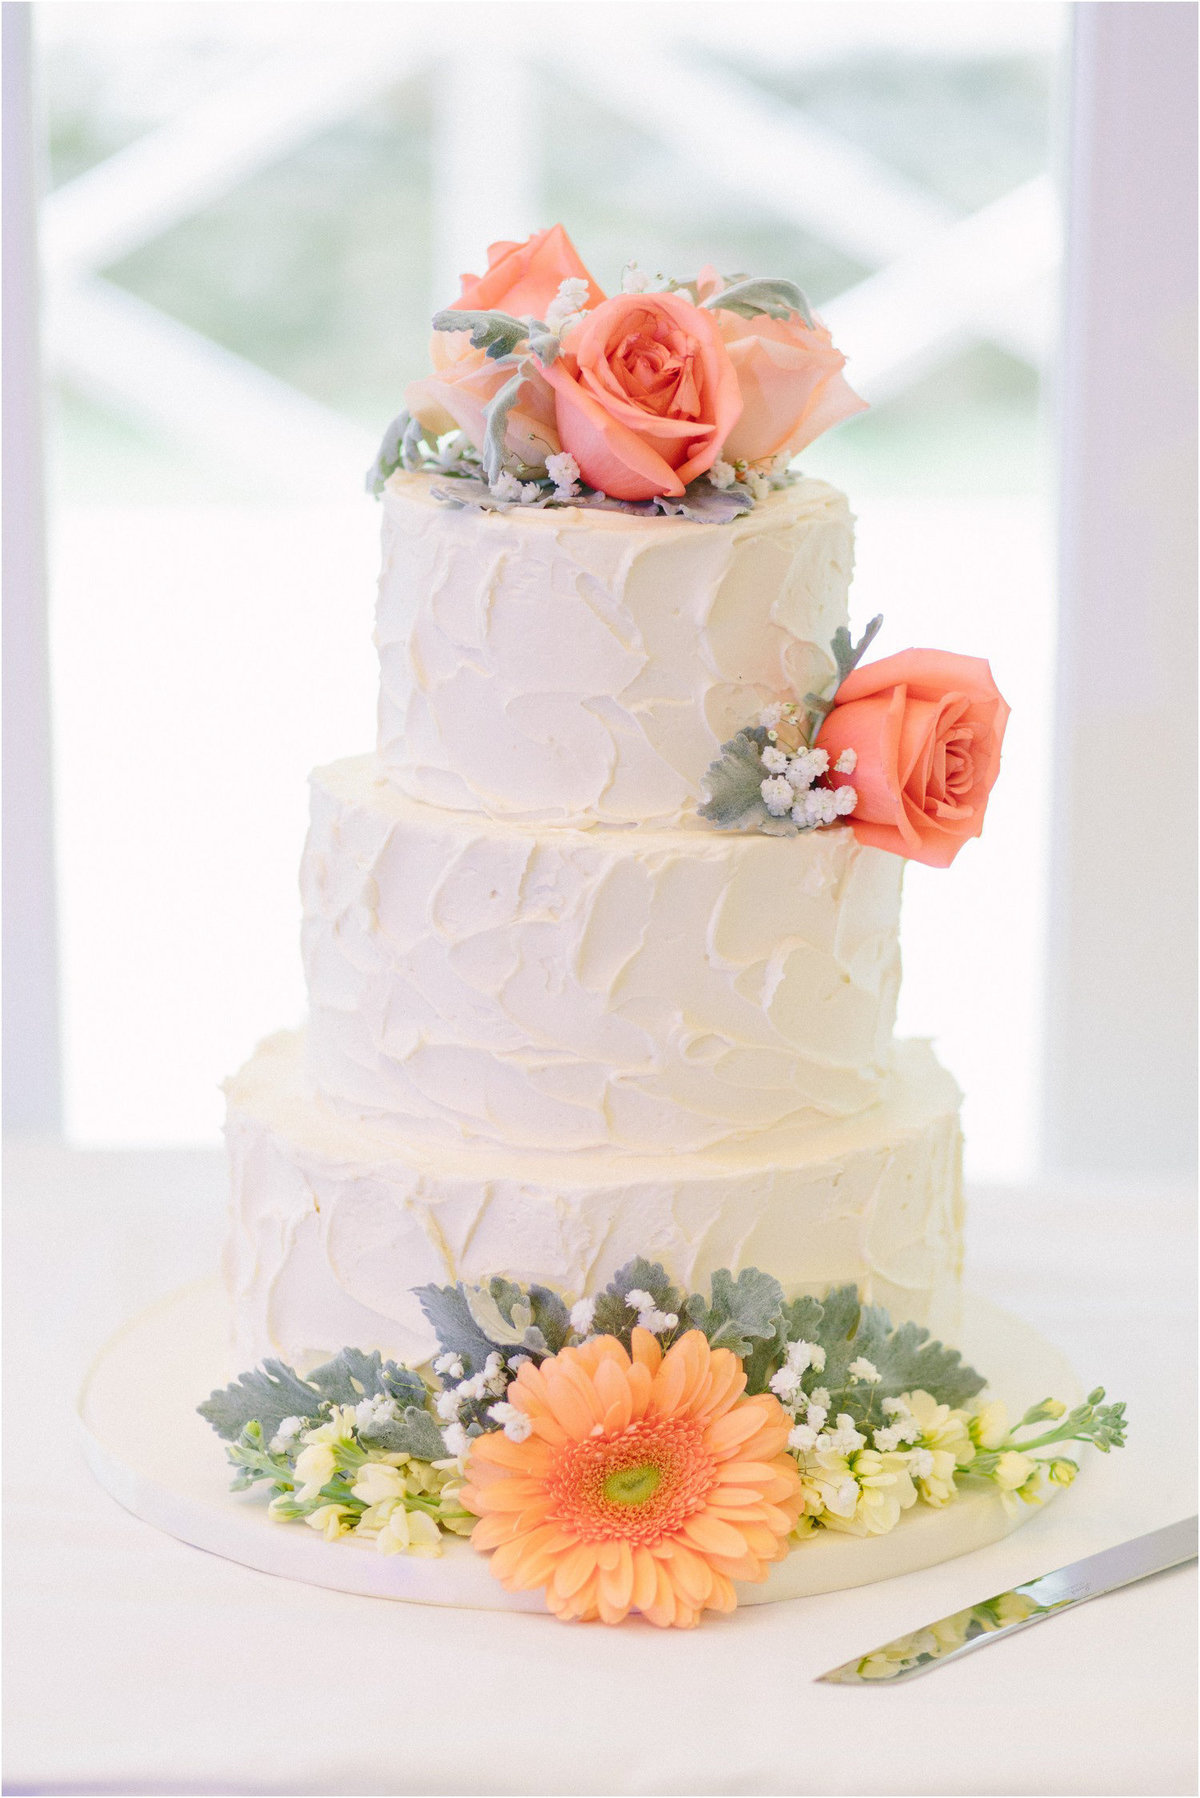 gateau wedding cake